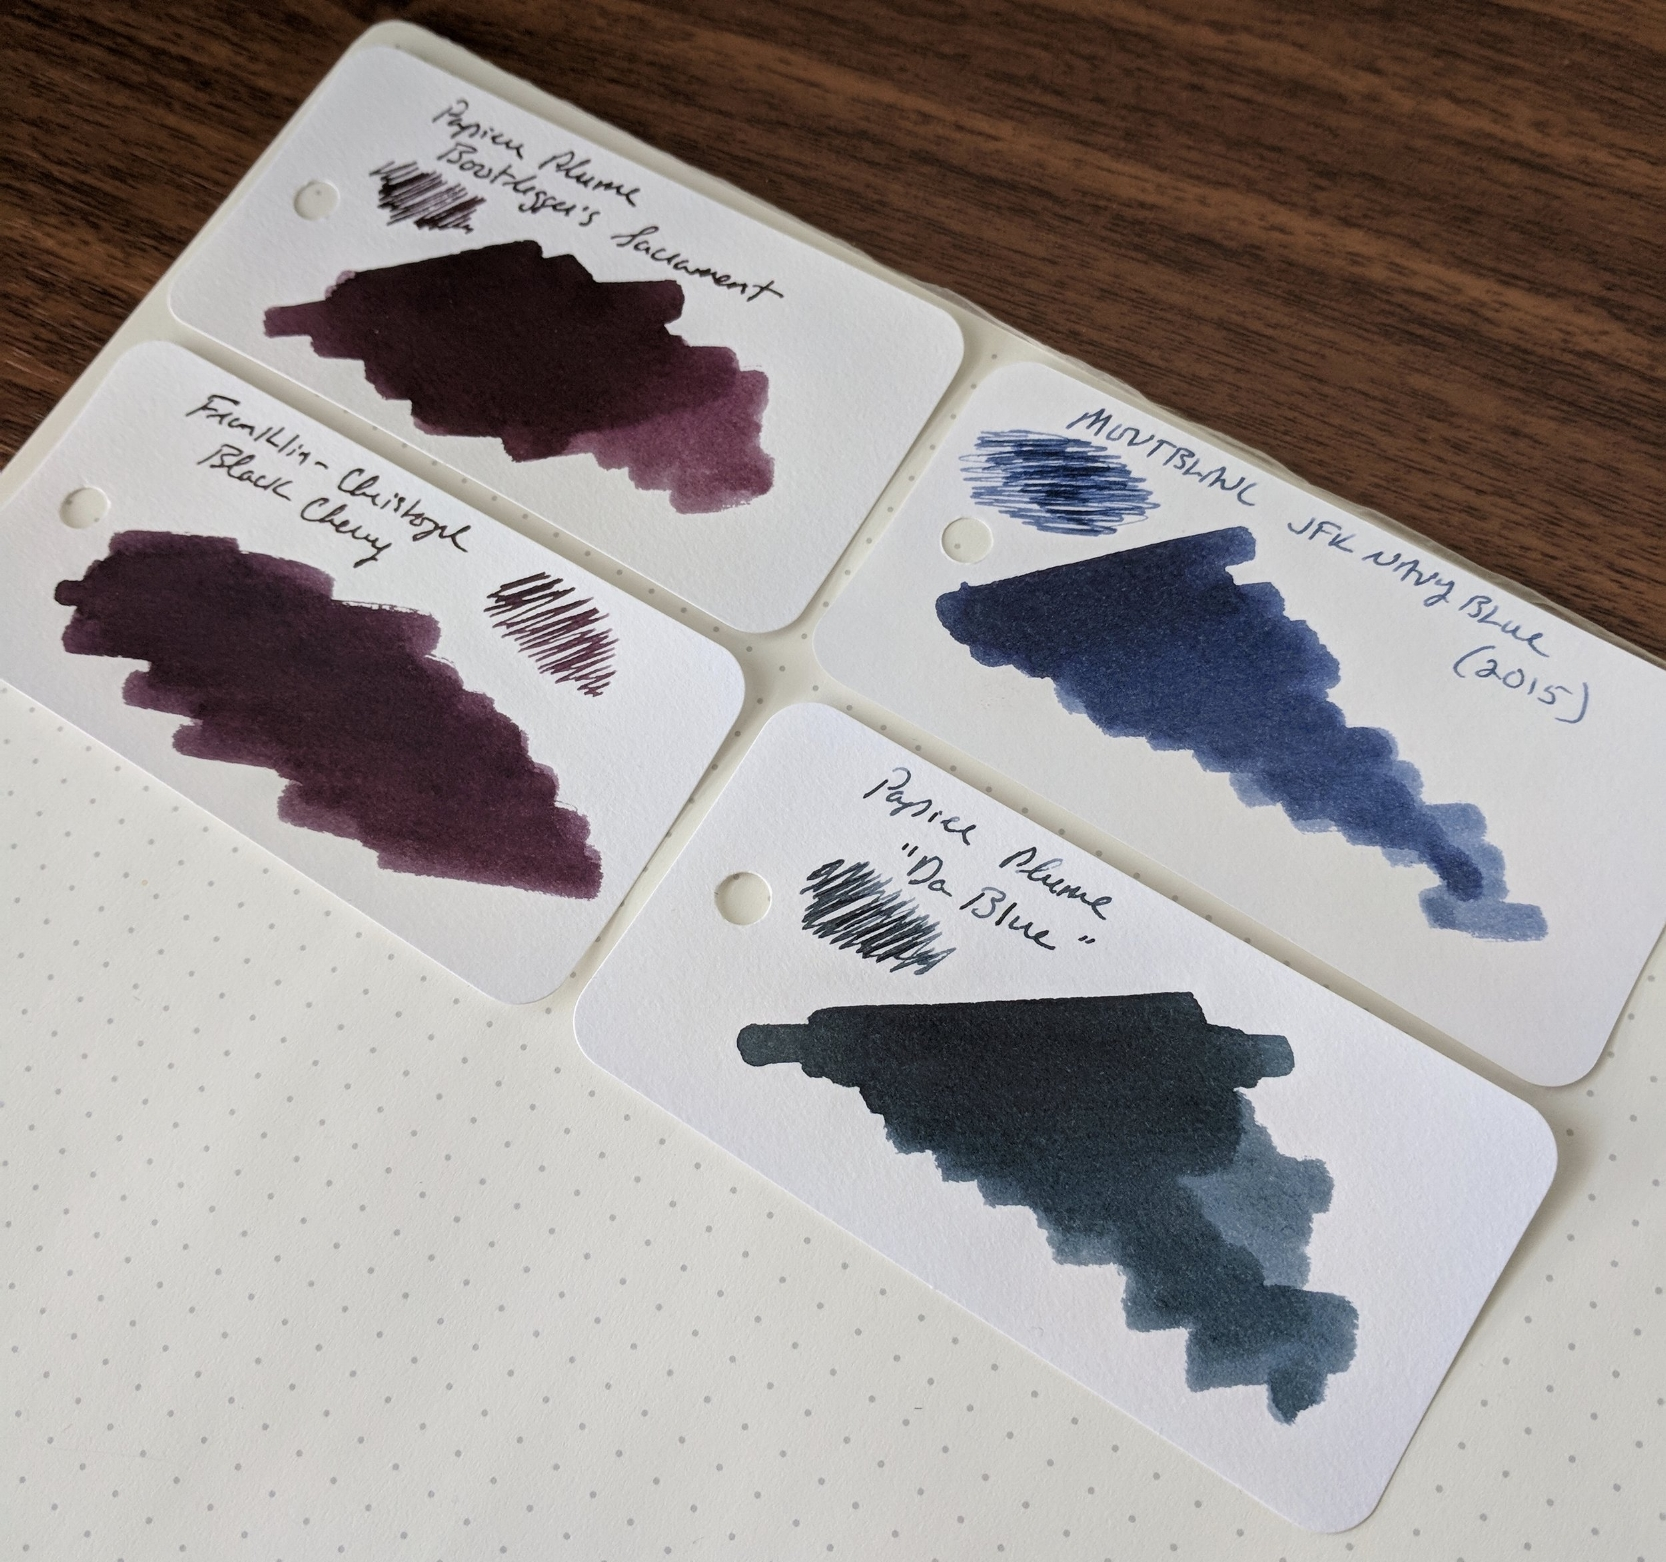 "Some color comparisons: Bootlegger's Sacrament is pretty close to  Franklin-Christoph Black Cherry , though the Papier Plume ink has more purple. When I first saw ""Da Blue,""  Montblanc JFK Navy Blue  came to mind, though the Papier Plume ink has a lot more green and grey."